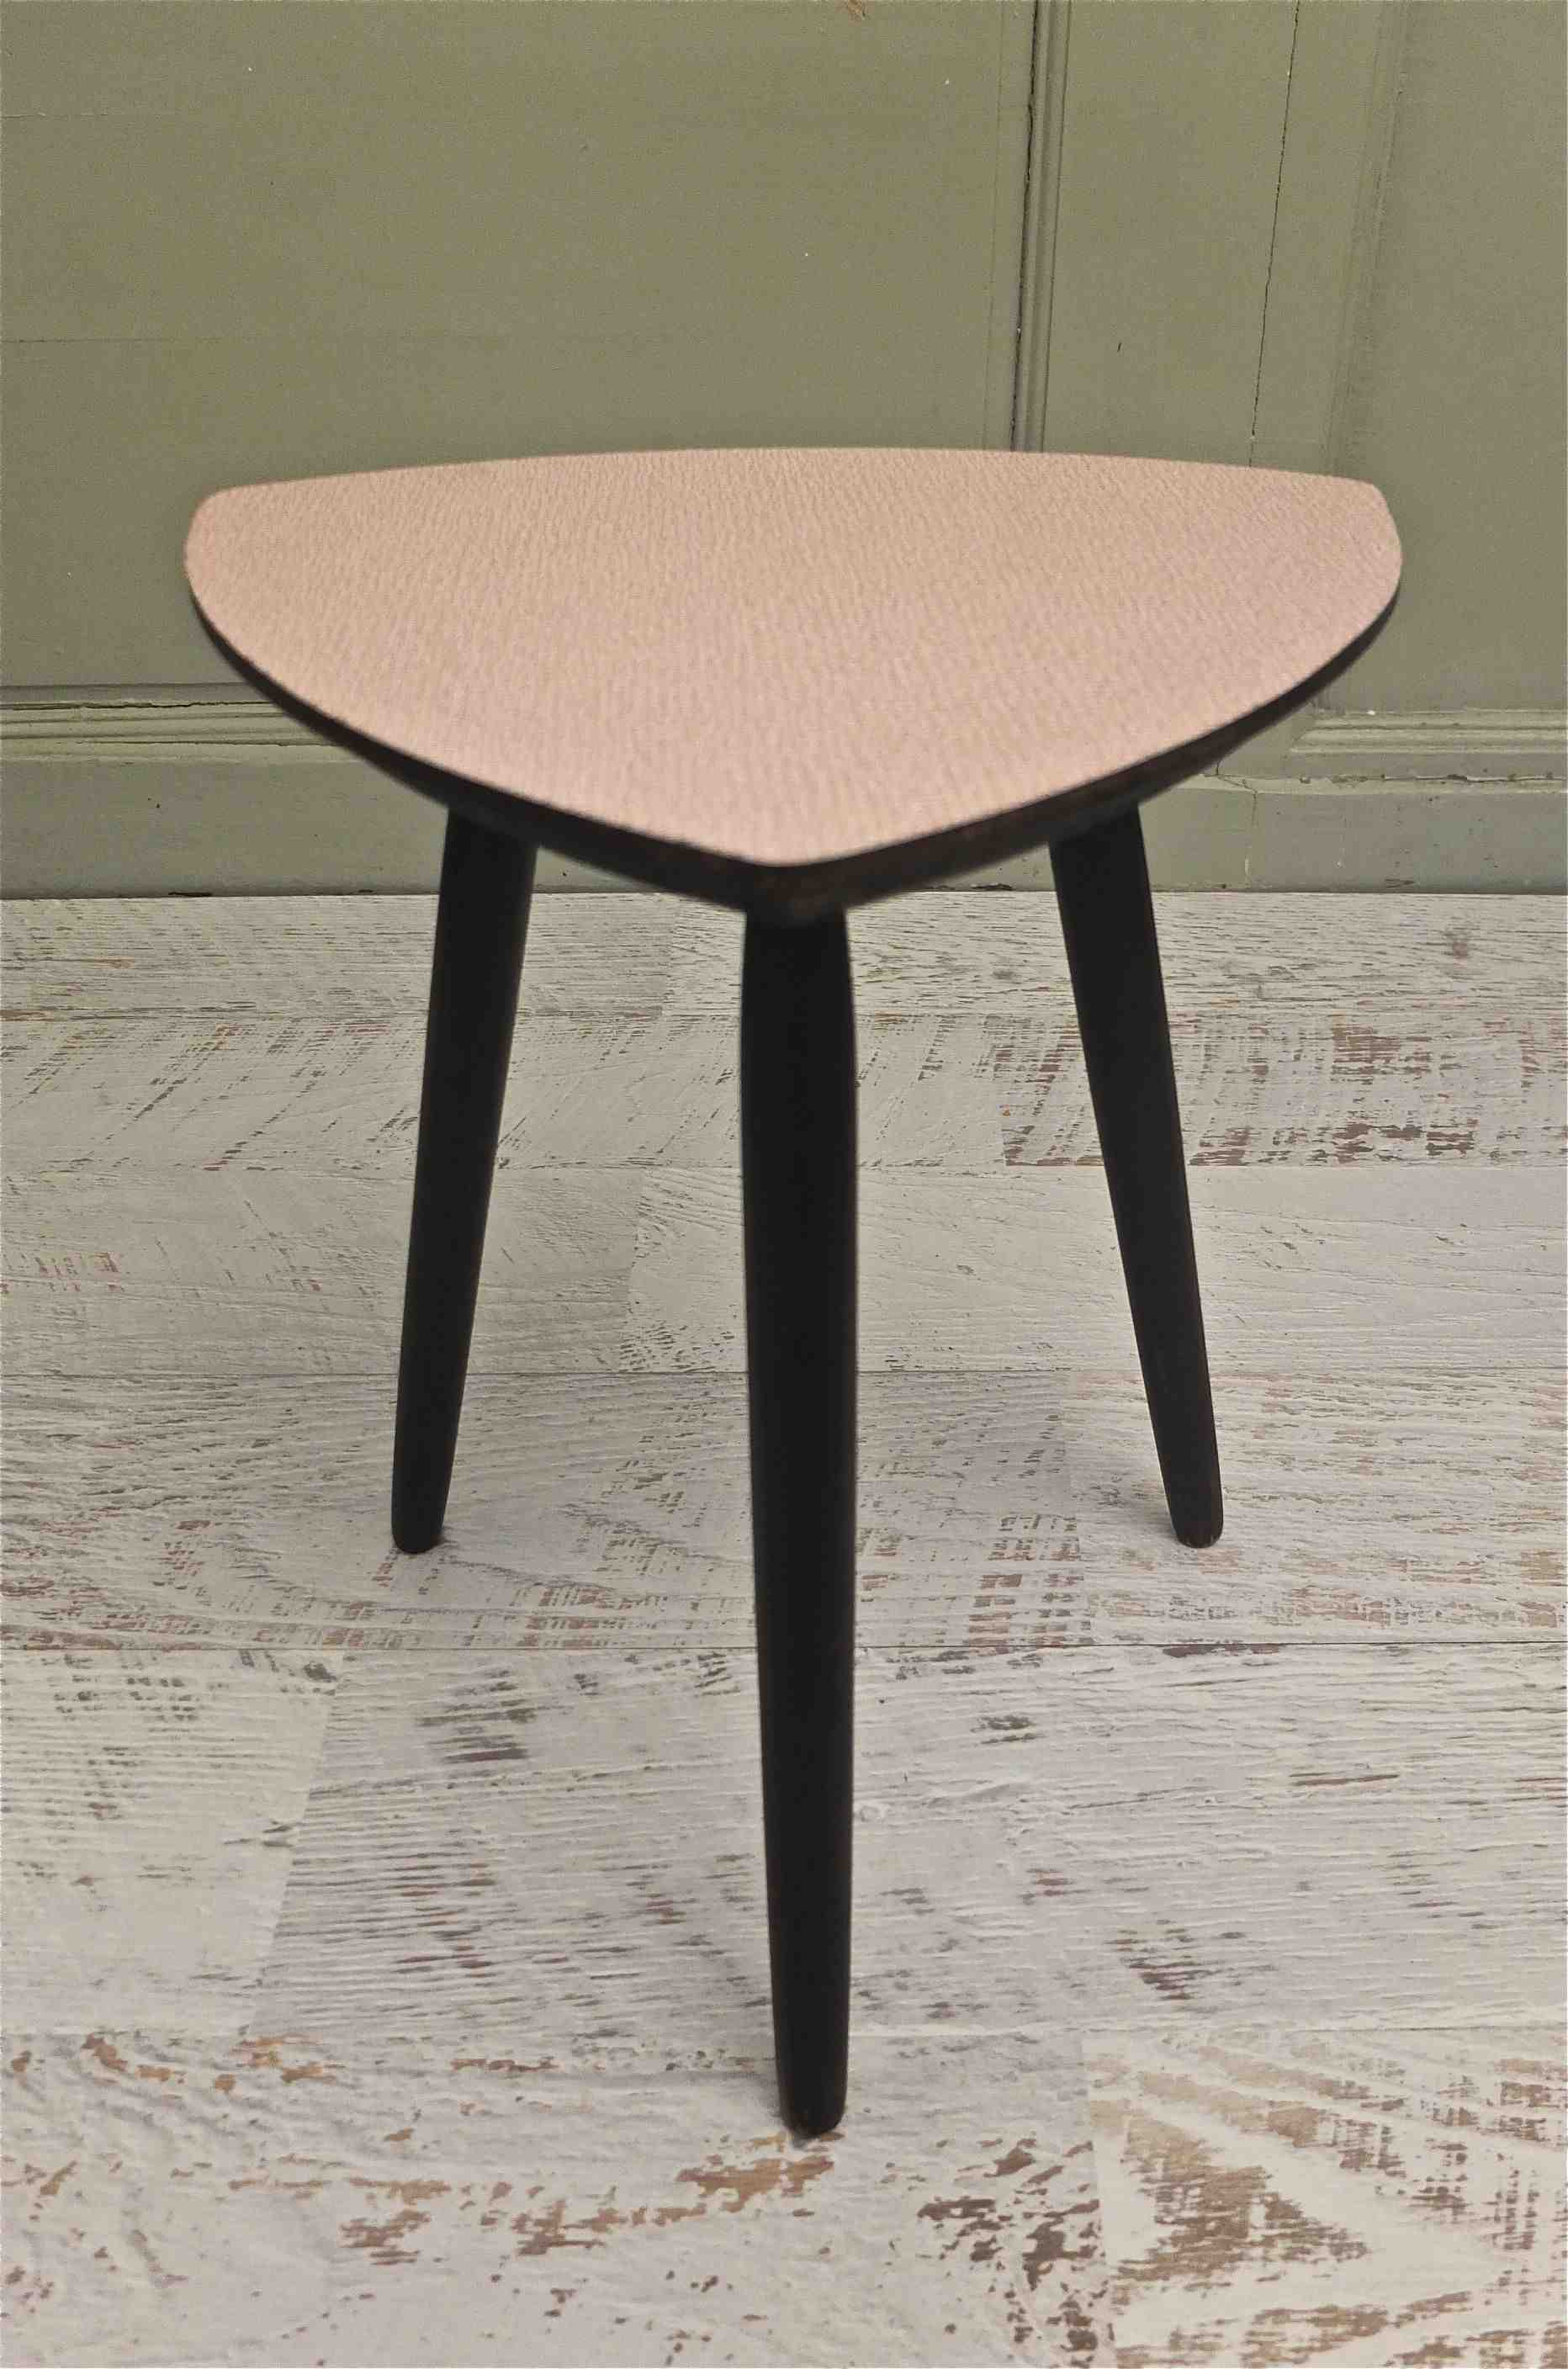 slavia vintage mobilier vintage petite table tripode des ann es 50 corbu. Black Bedroom Furniture Sets. Home Design Ideas